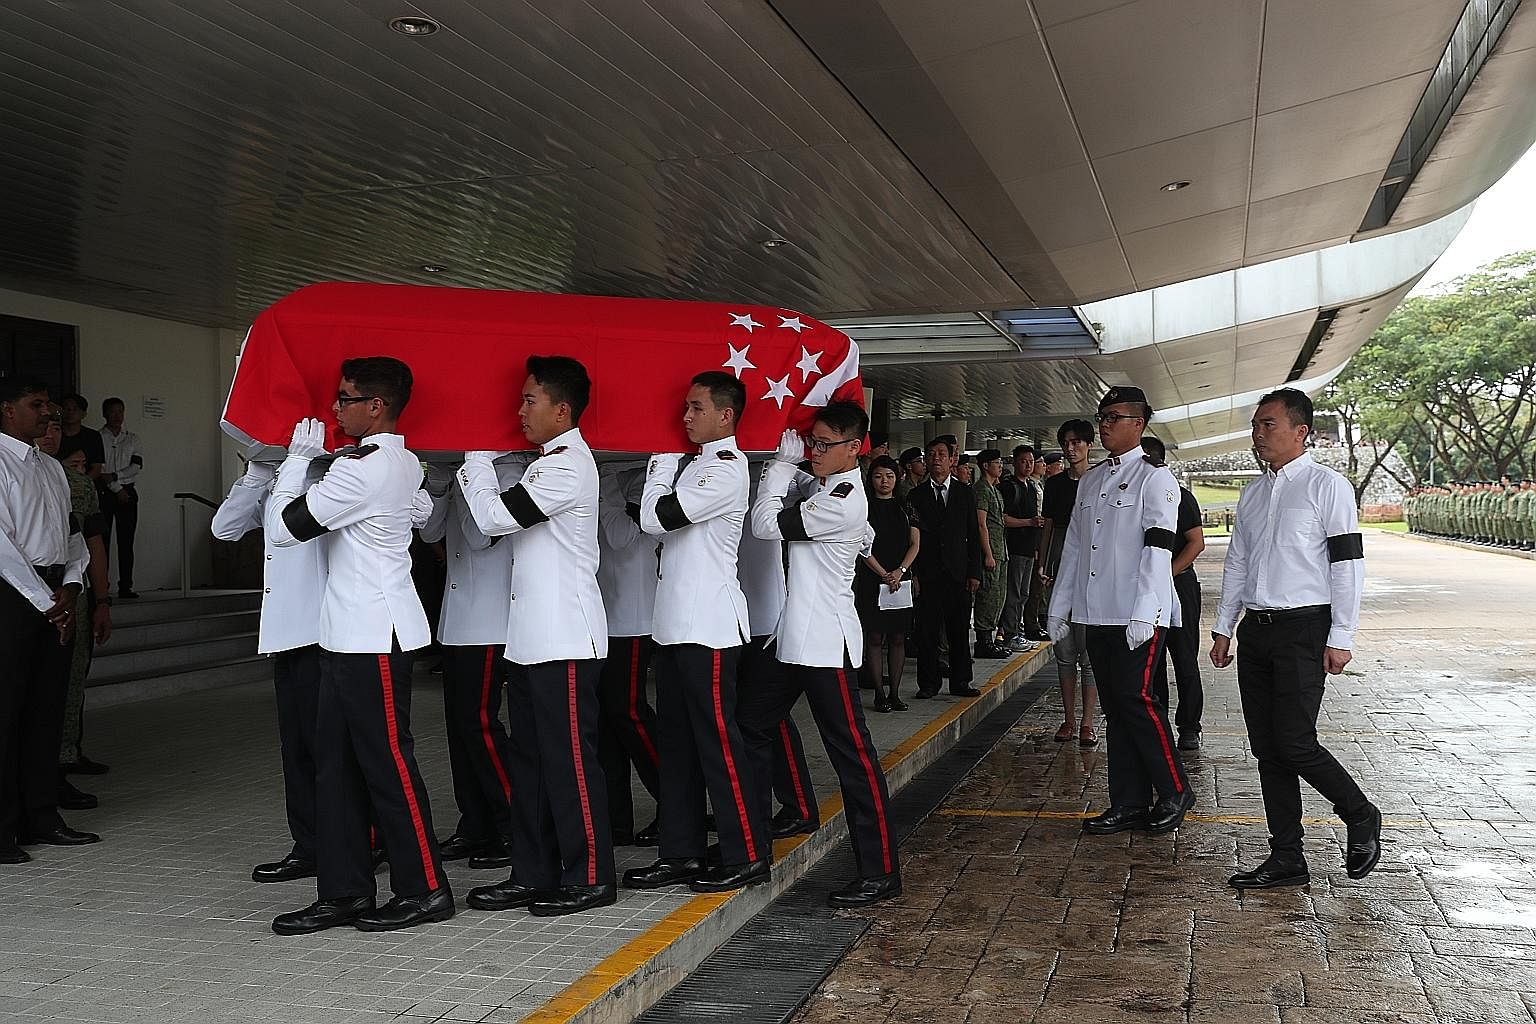 SAF personnel carrying the coffin of Corporal First Class Aloysius Pang (above) into Mandai Crematorium last month. Following the incident that led to CFC Pang's death, members of the public had suggested reducing the need for NSmen to perform mainte